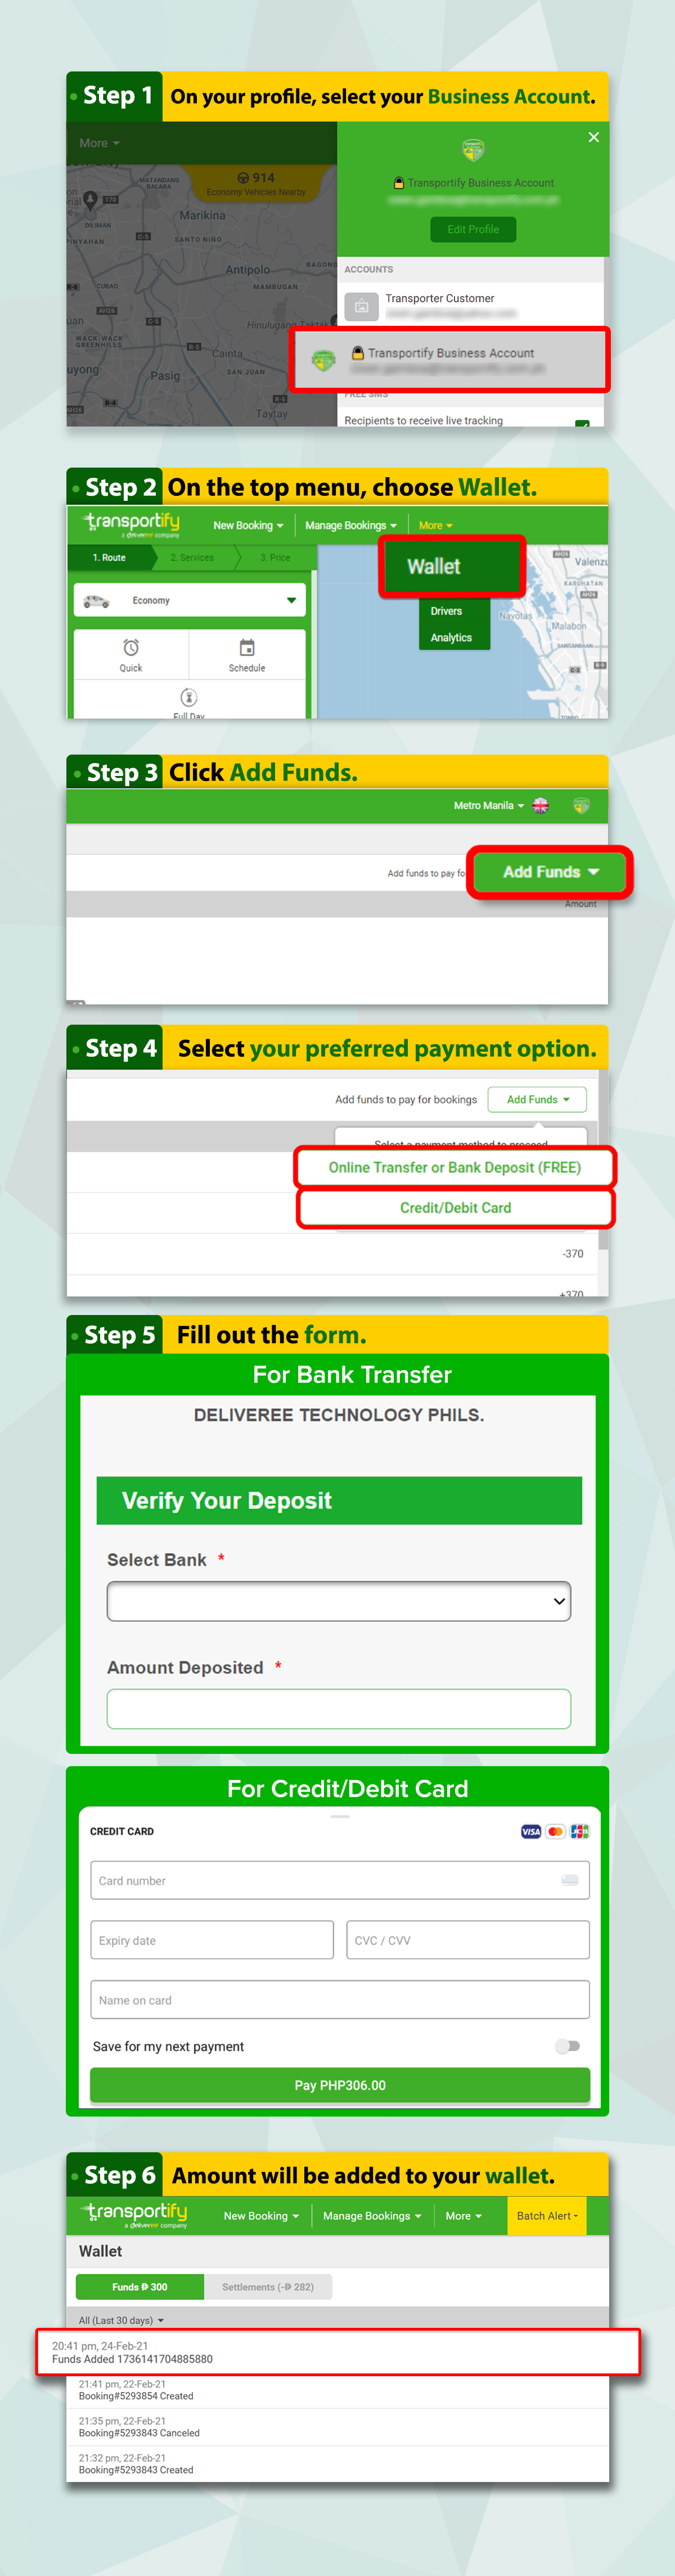 Add Funds to your BP Account - Web App